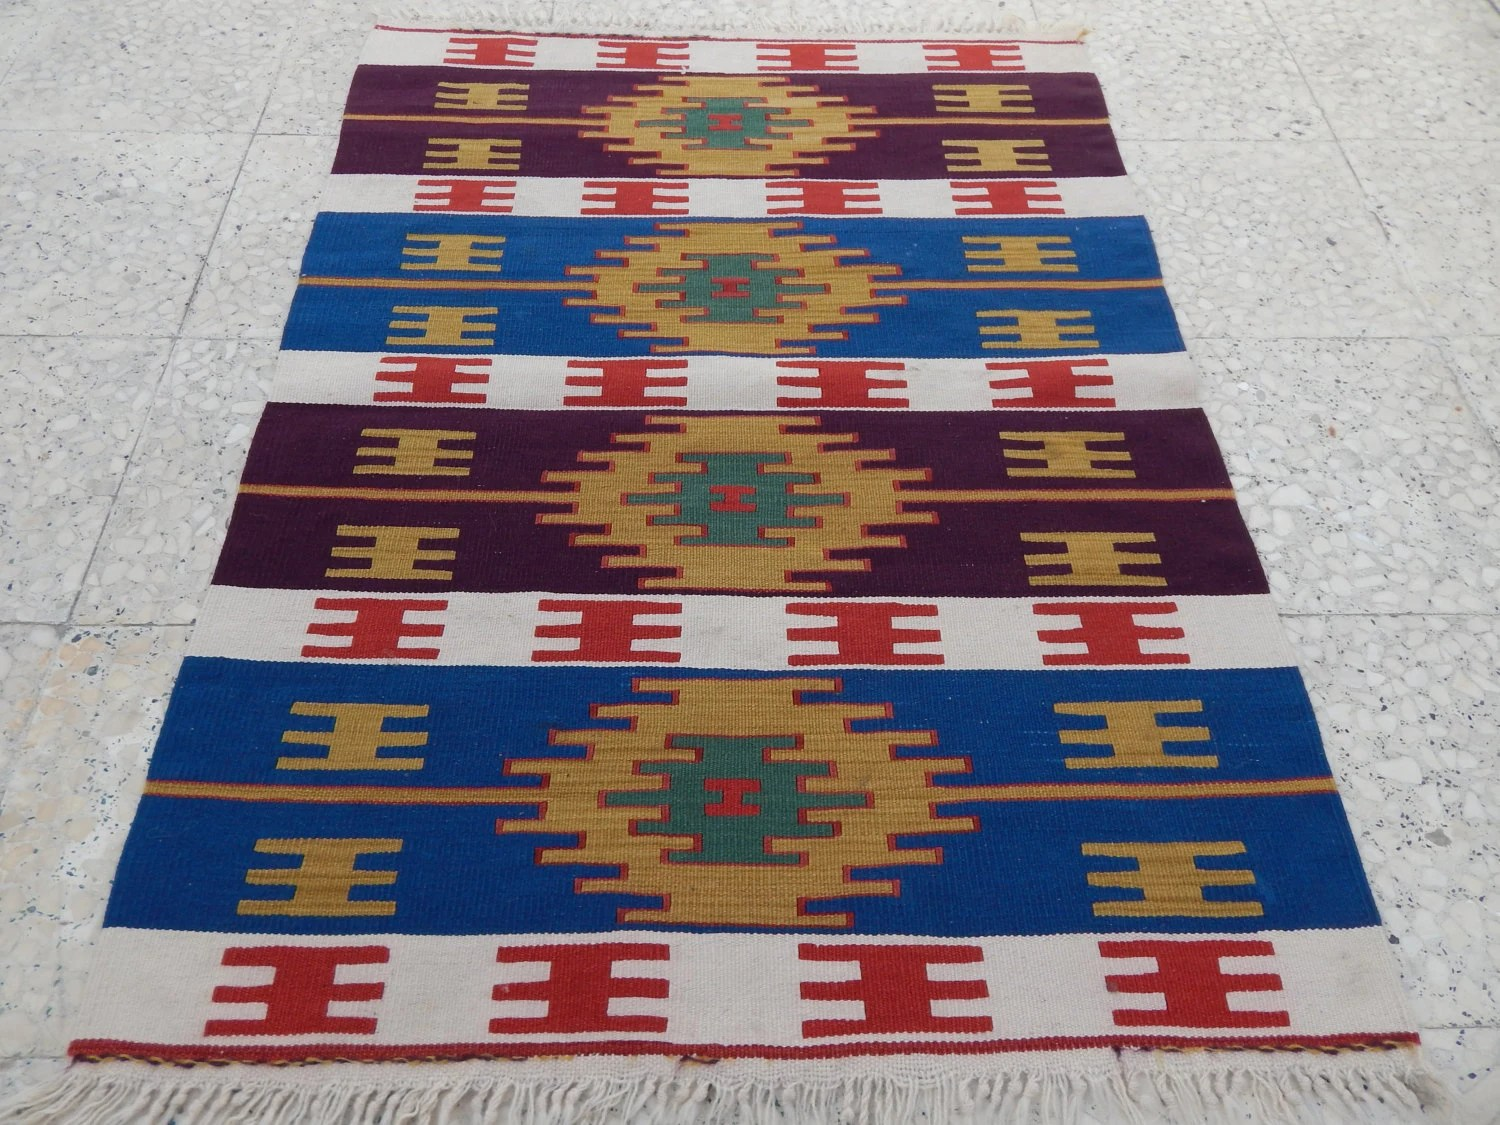 Vintage Teppich Kelim Pastel Tapestry Kilim Rug Vintage Oriental Kelim Teppich Tapis Kilim Petite Small Turkish Textile Flat Weave Rug 2 9 X 3 8 85x112cm